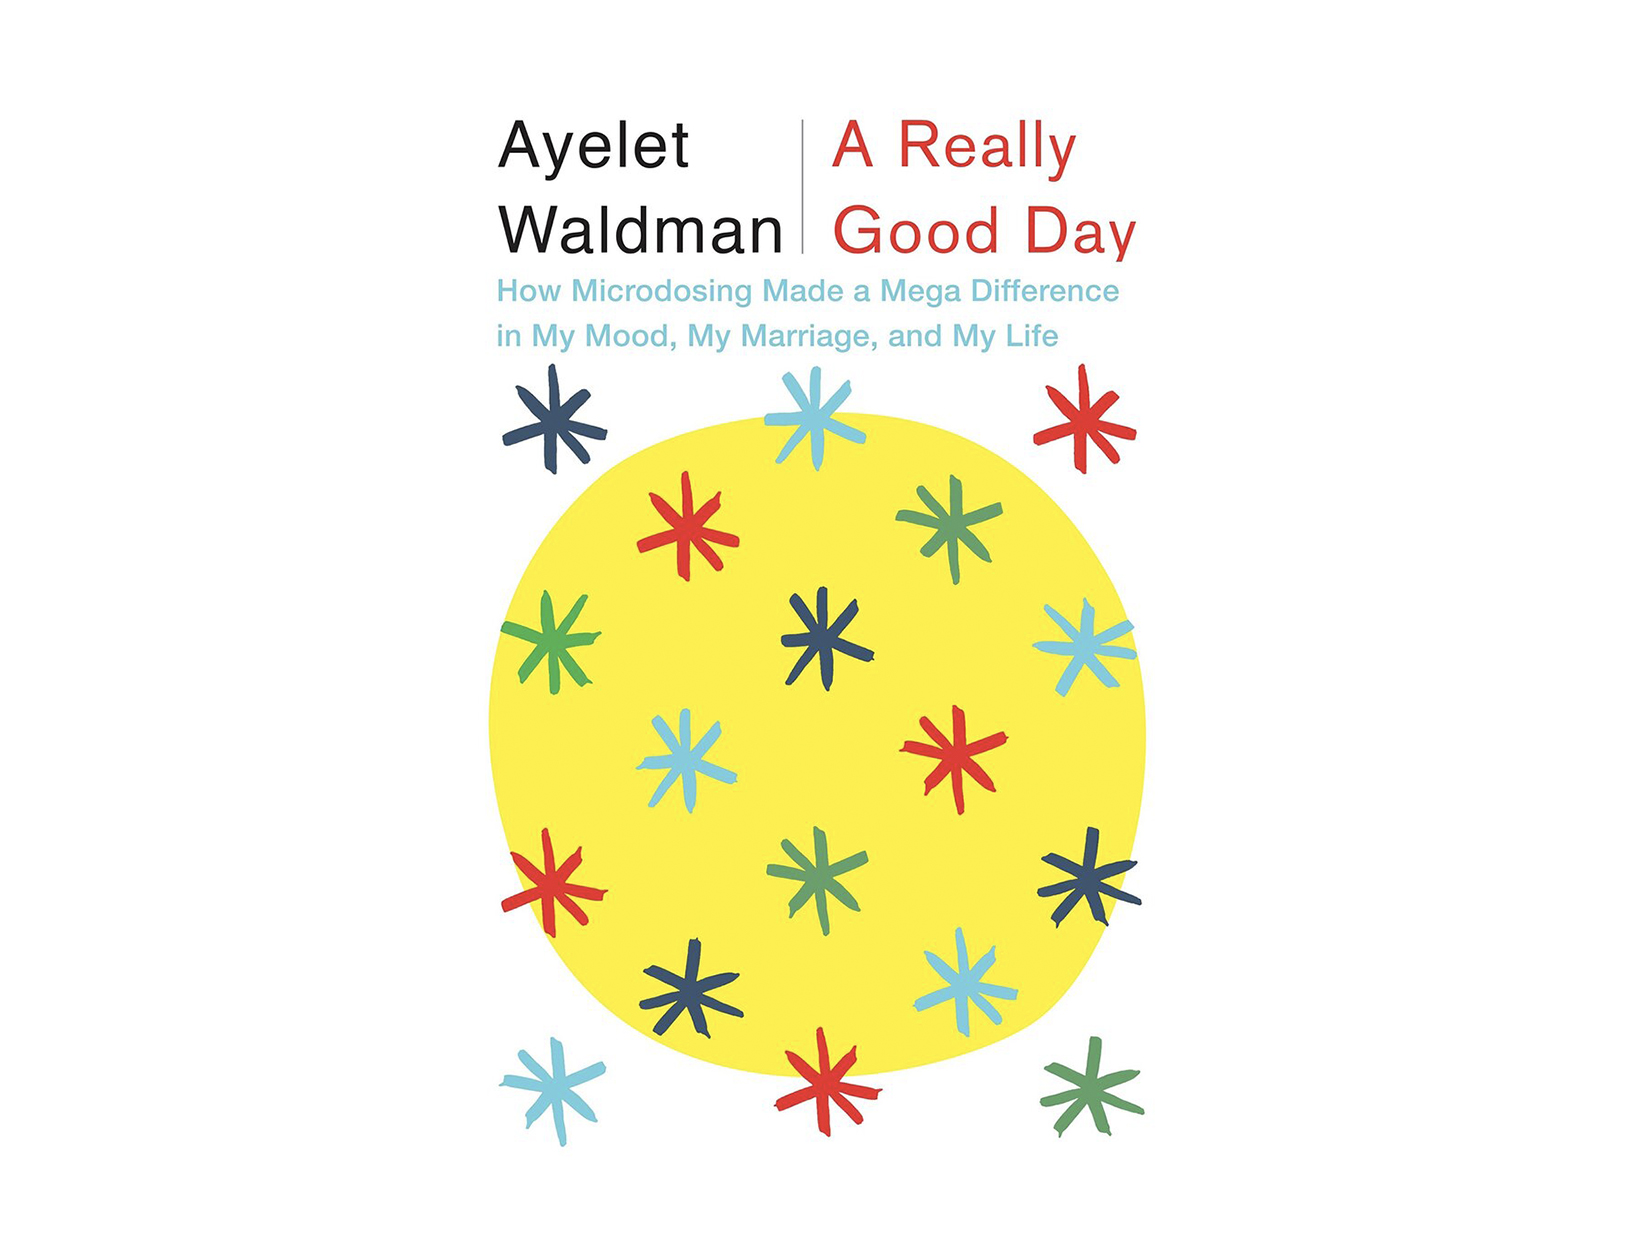 <em>A Really Good Day</em> by Ayelet Waldman